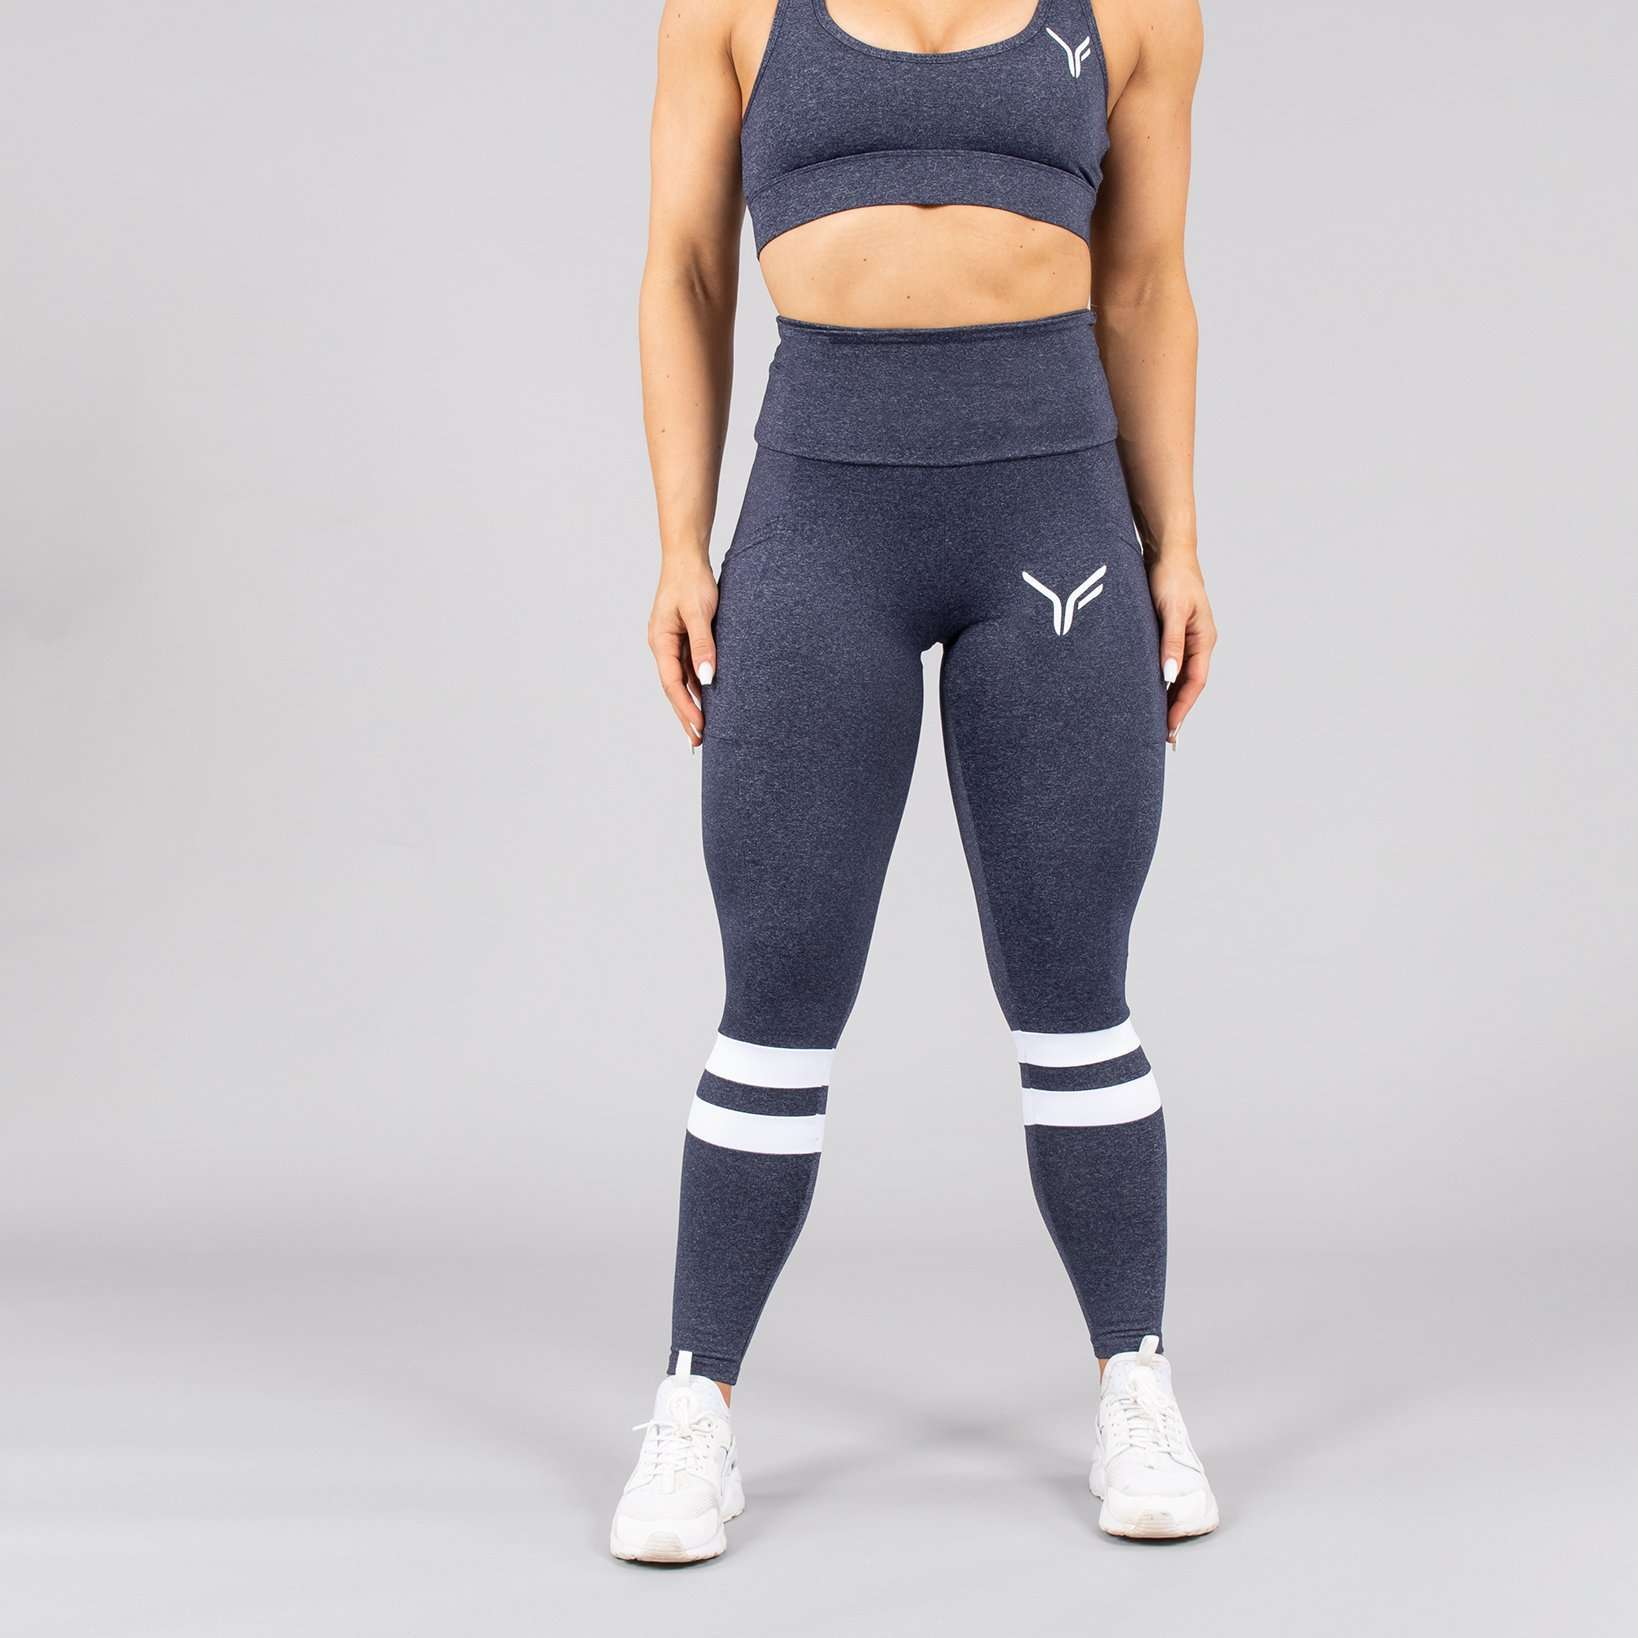 Versa Forma | Lagom Leggings - Power Blue